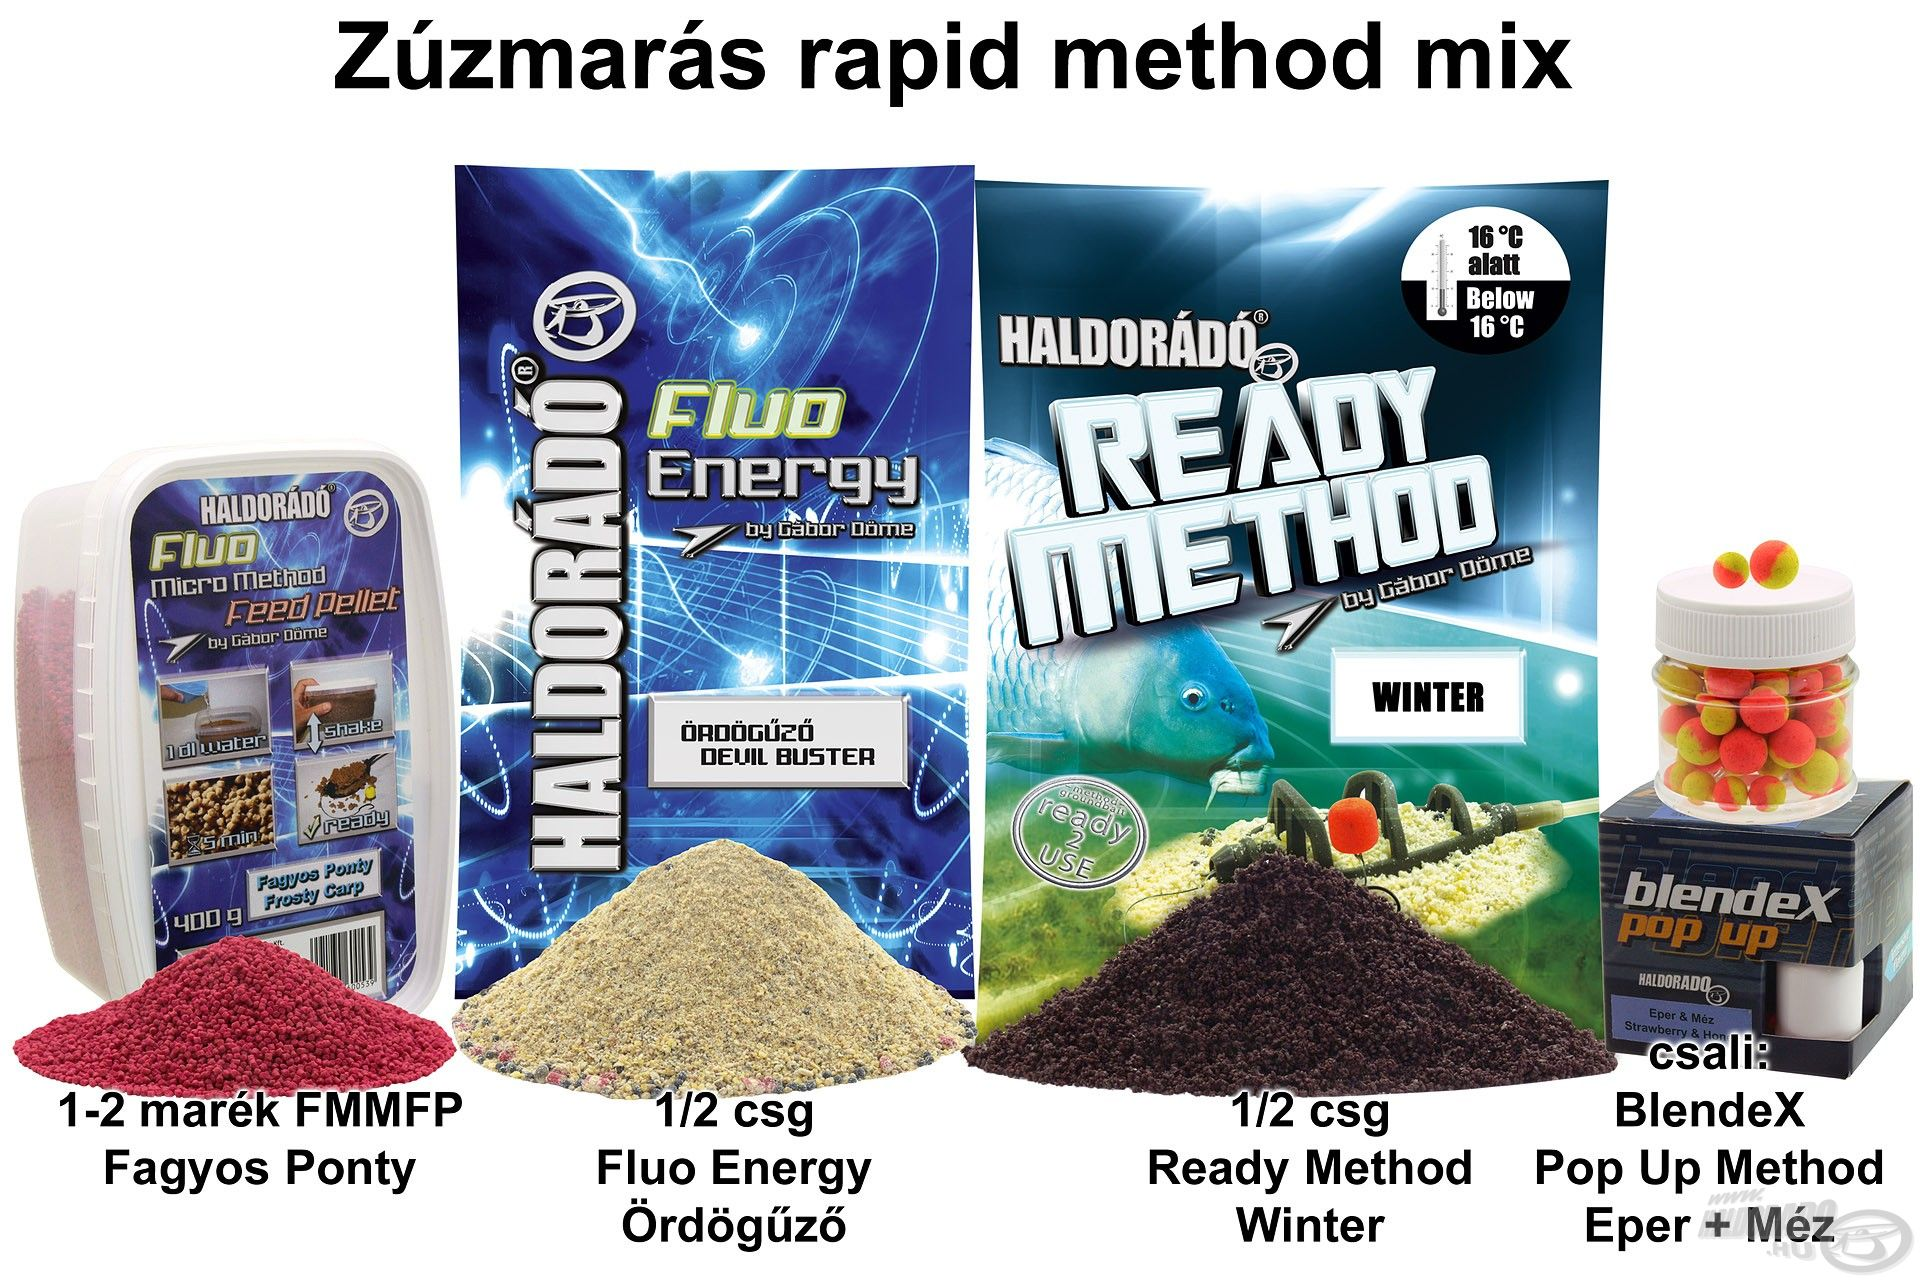 Zúzmarás rapid method mix